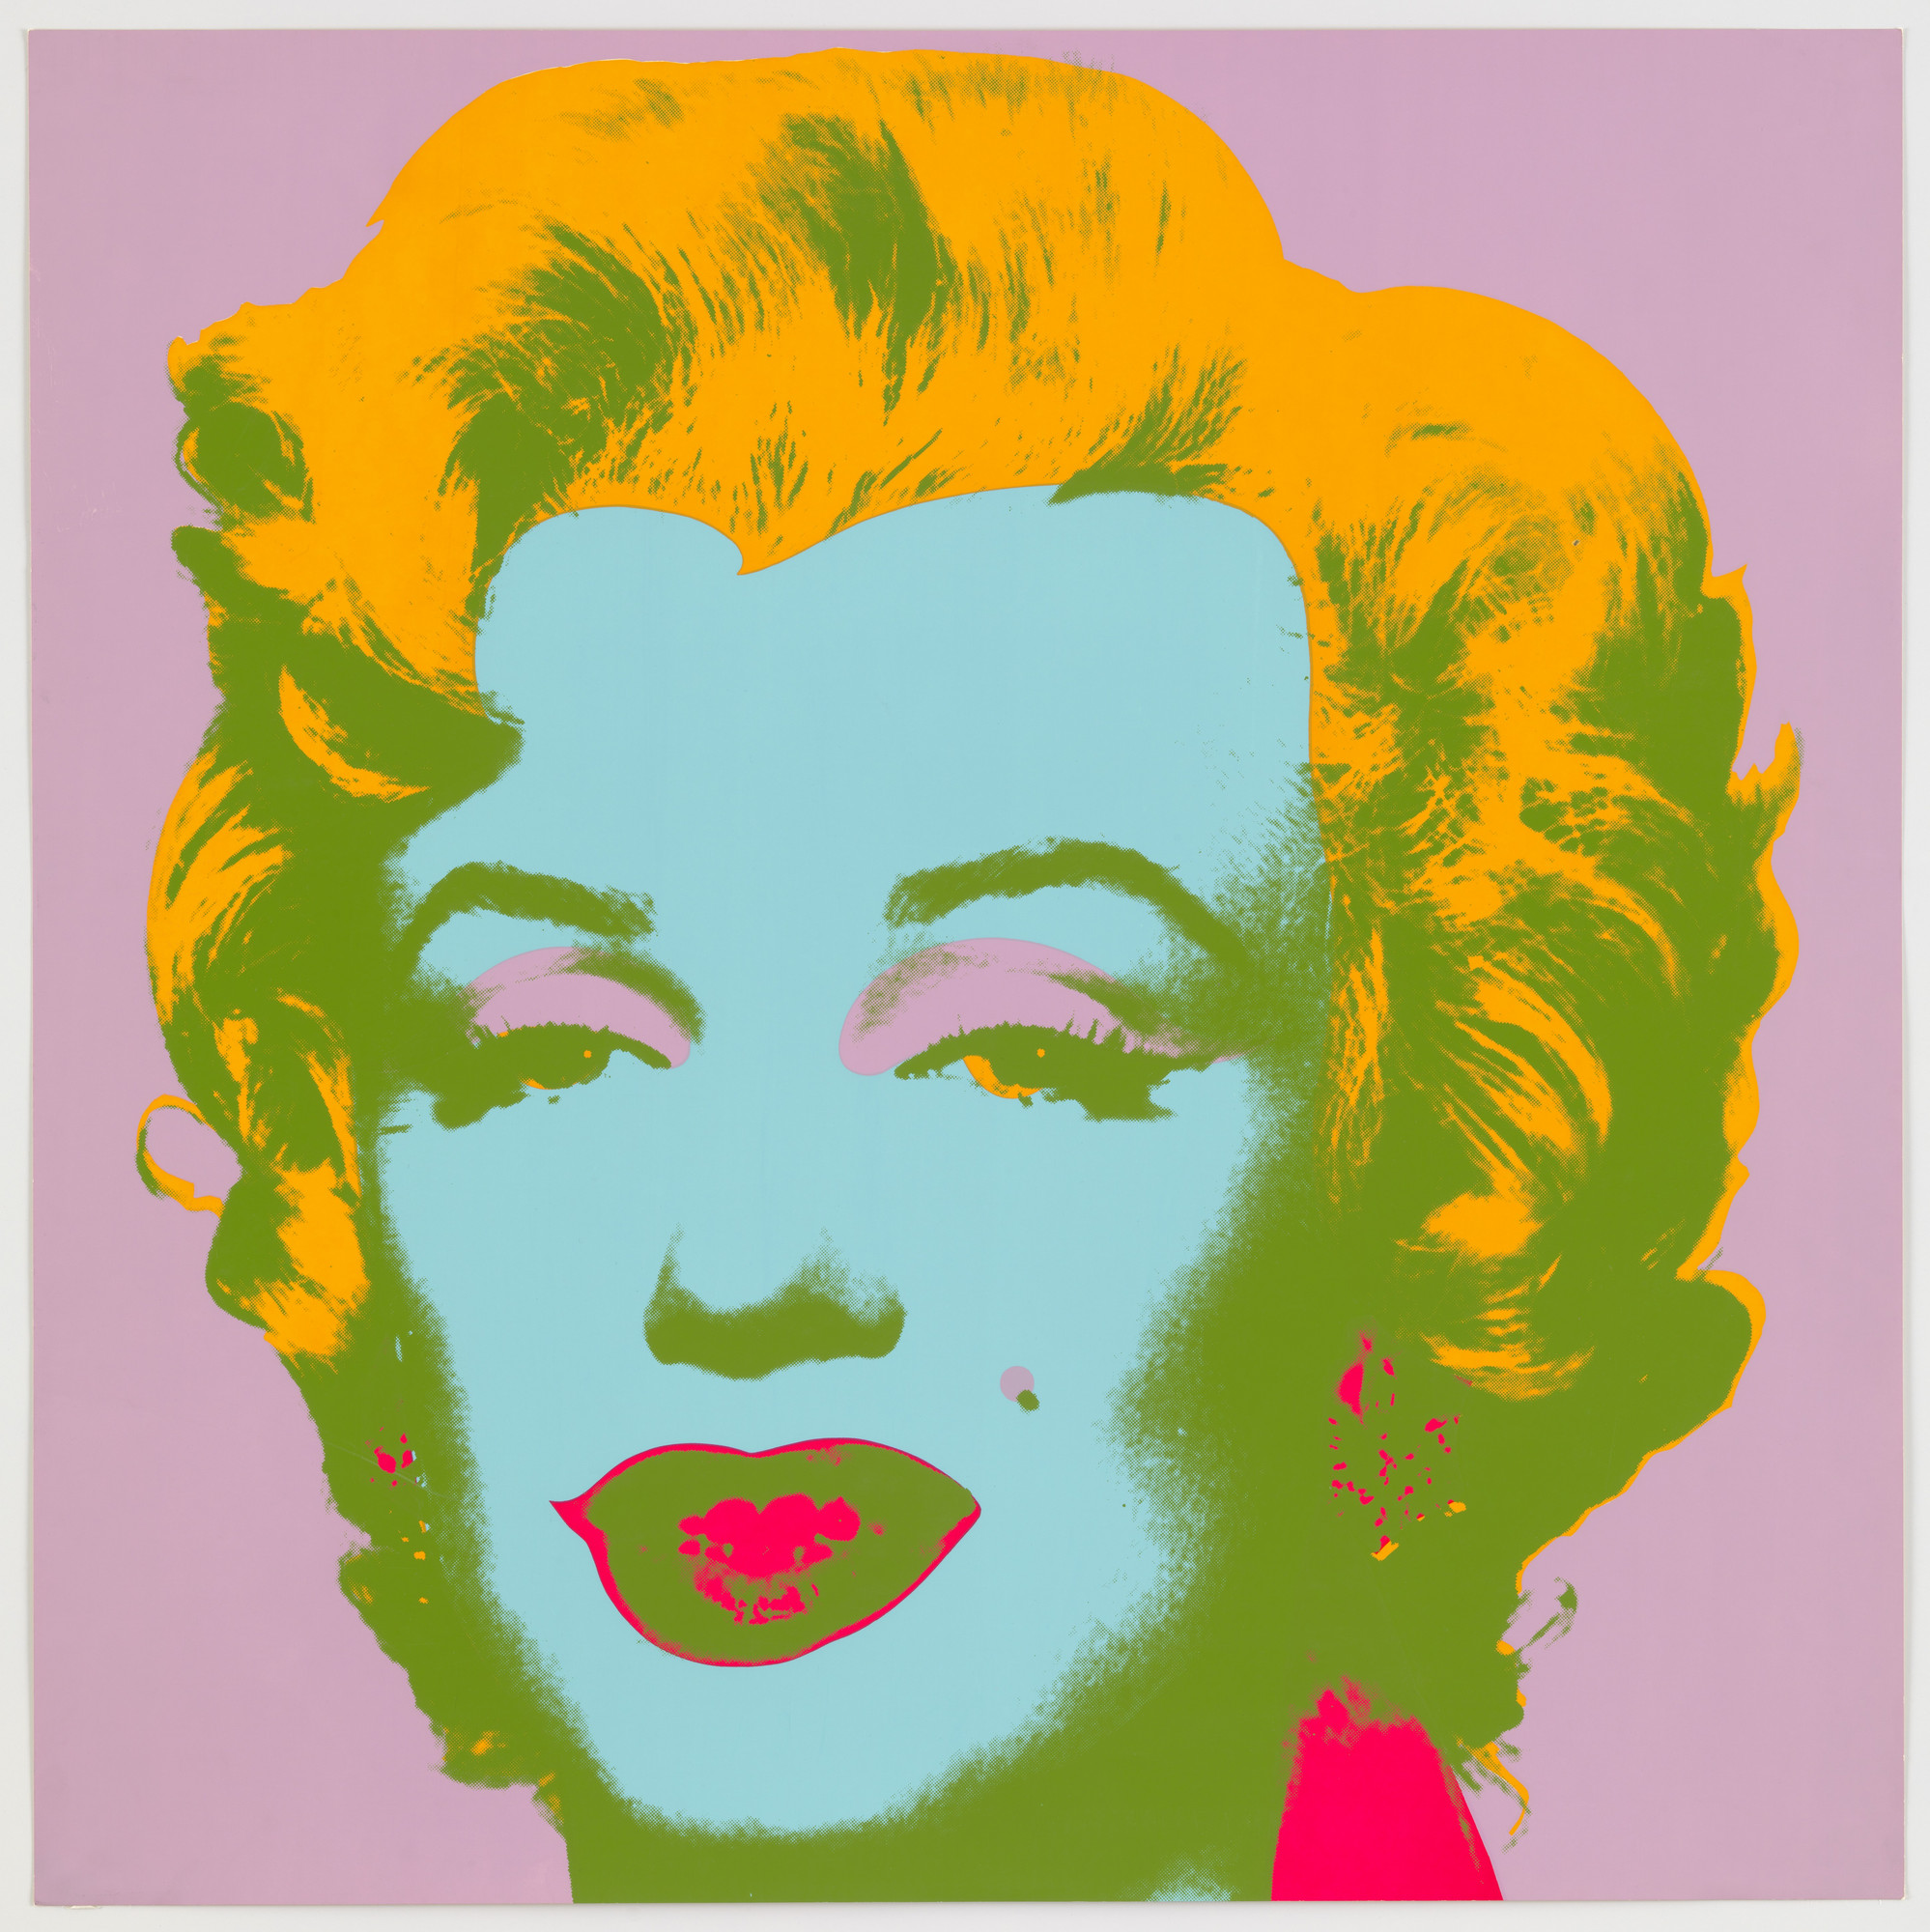 Andy Warhol. Untitled from Marilyn Monroe. 1967